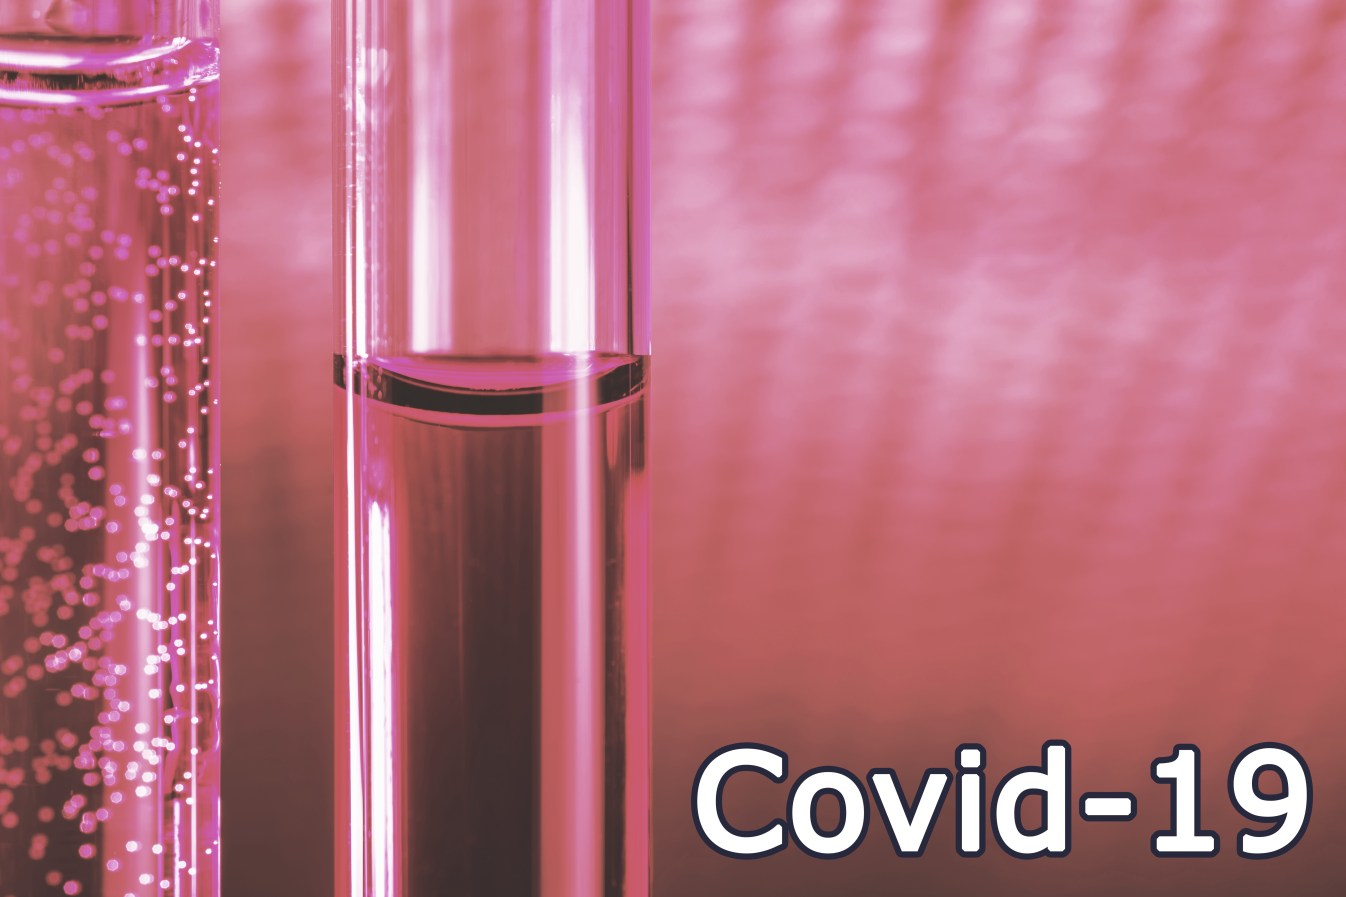 Covid-19. Red liquid vaccine in glass tubes.. Cases of COVID-19 illustration. Image credit: Ivan Uralsky. vaccine hesitancy concept. Also to illustrate article re: emergency use authorisation. Oxford/AstraZeneca vaccine. Also used in coverage of vaccine hoarding. Vaccination campaign concept.